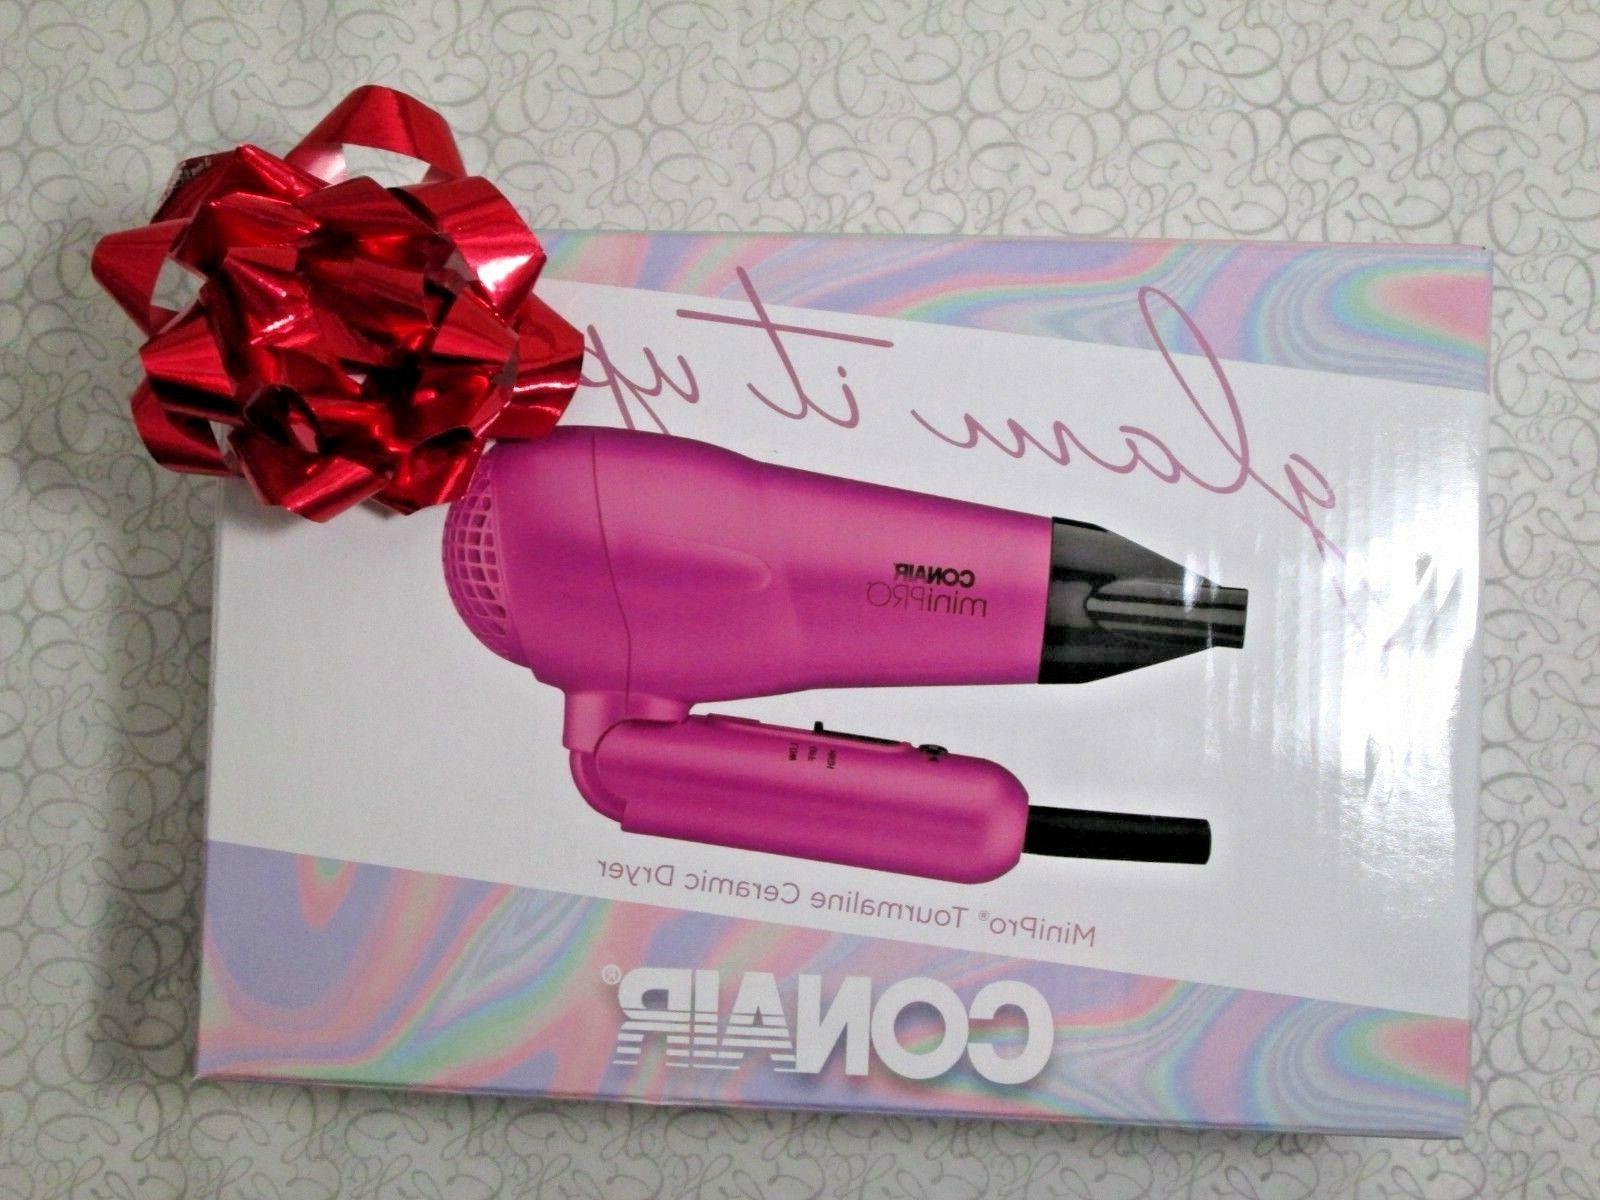 New with Box - Conair Pro